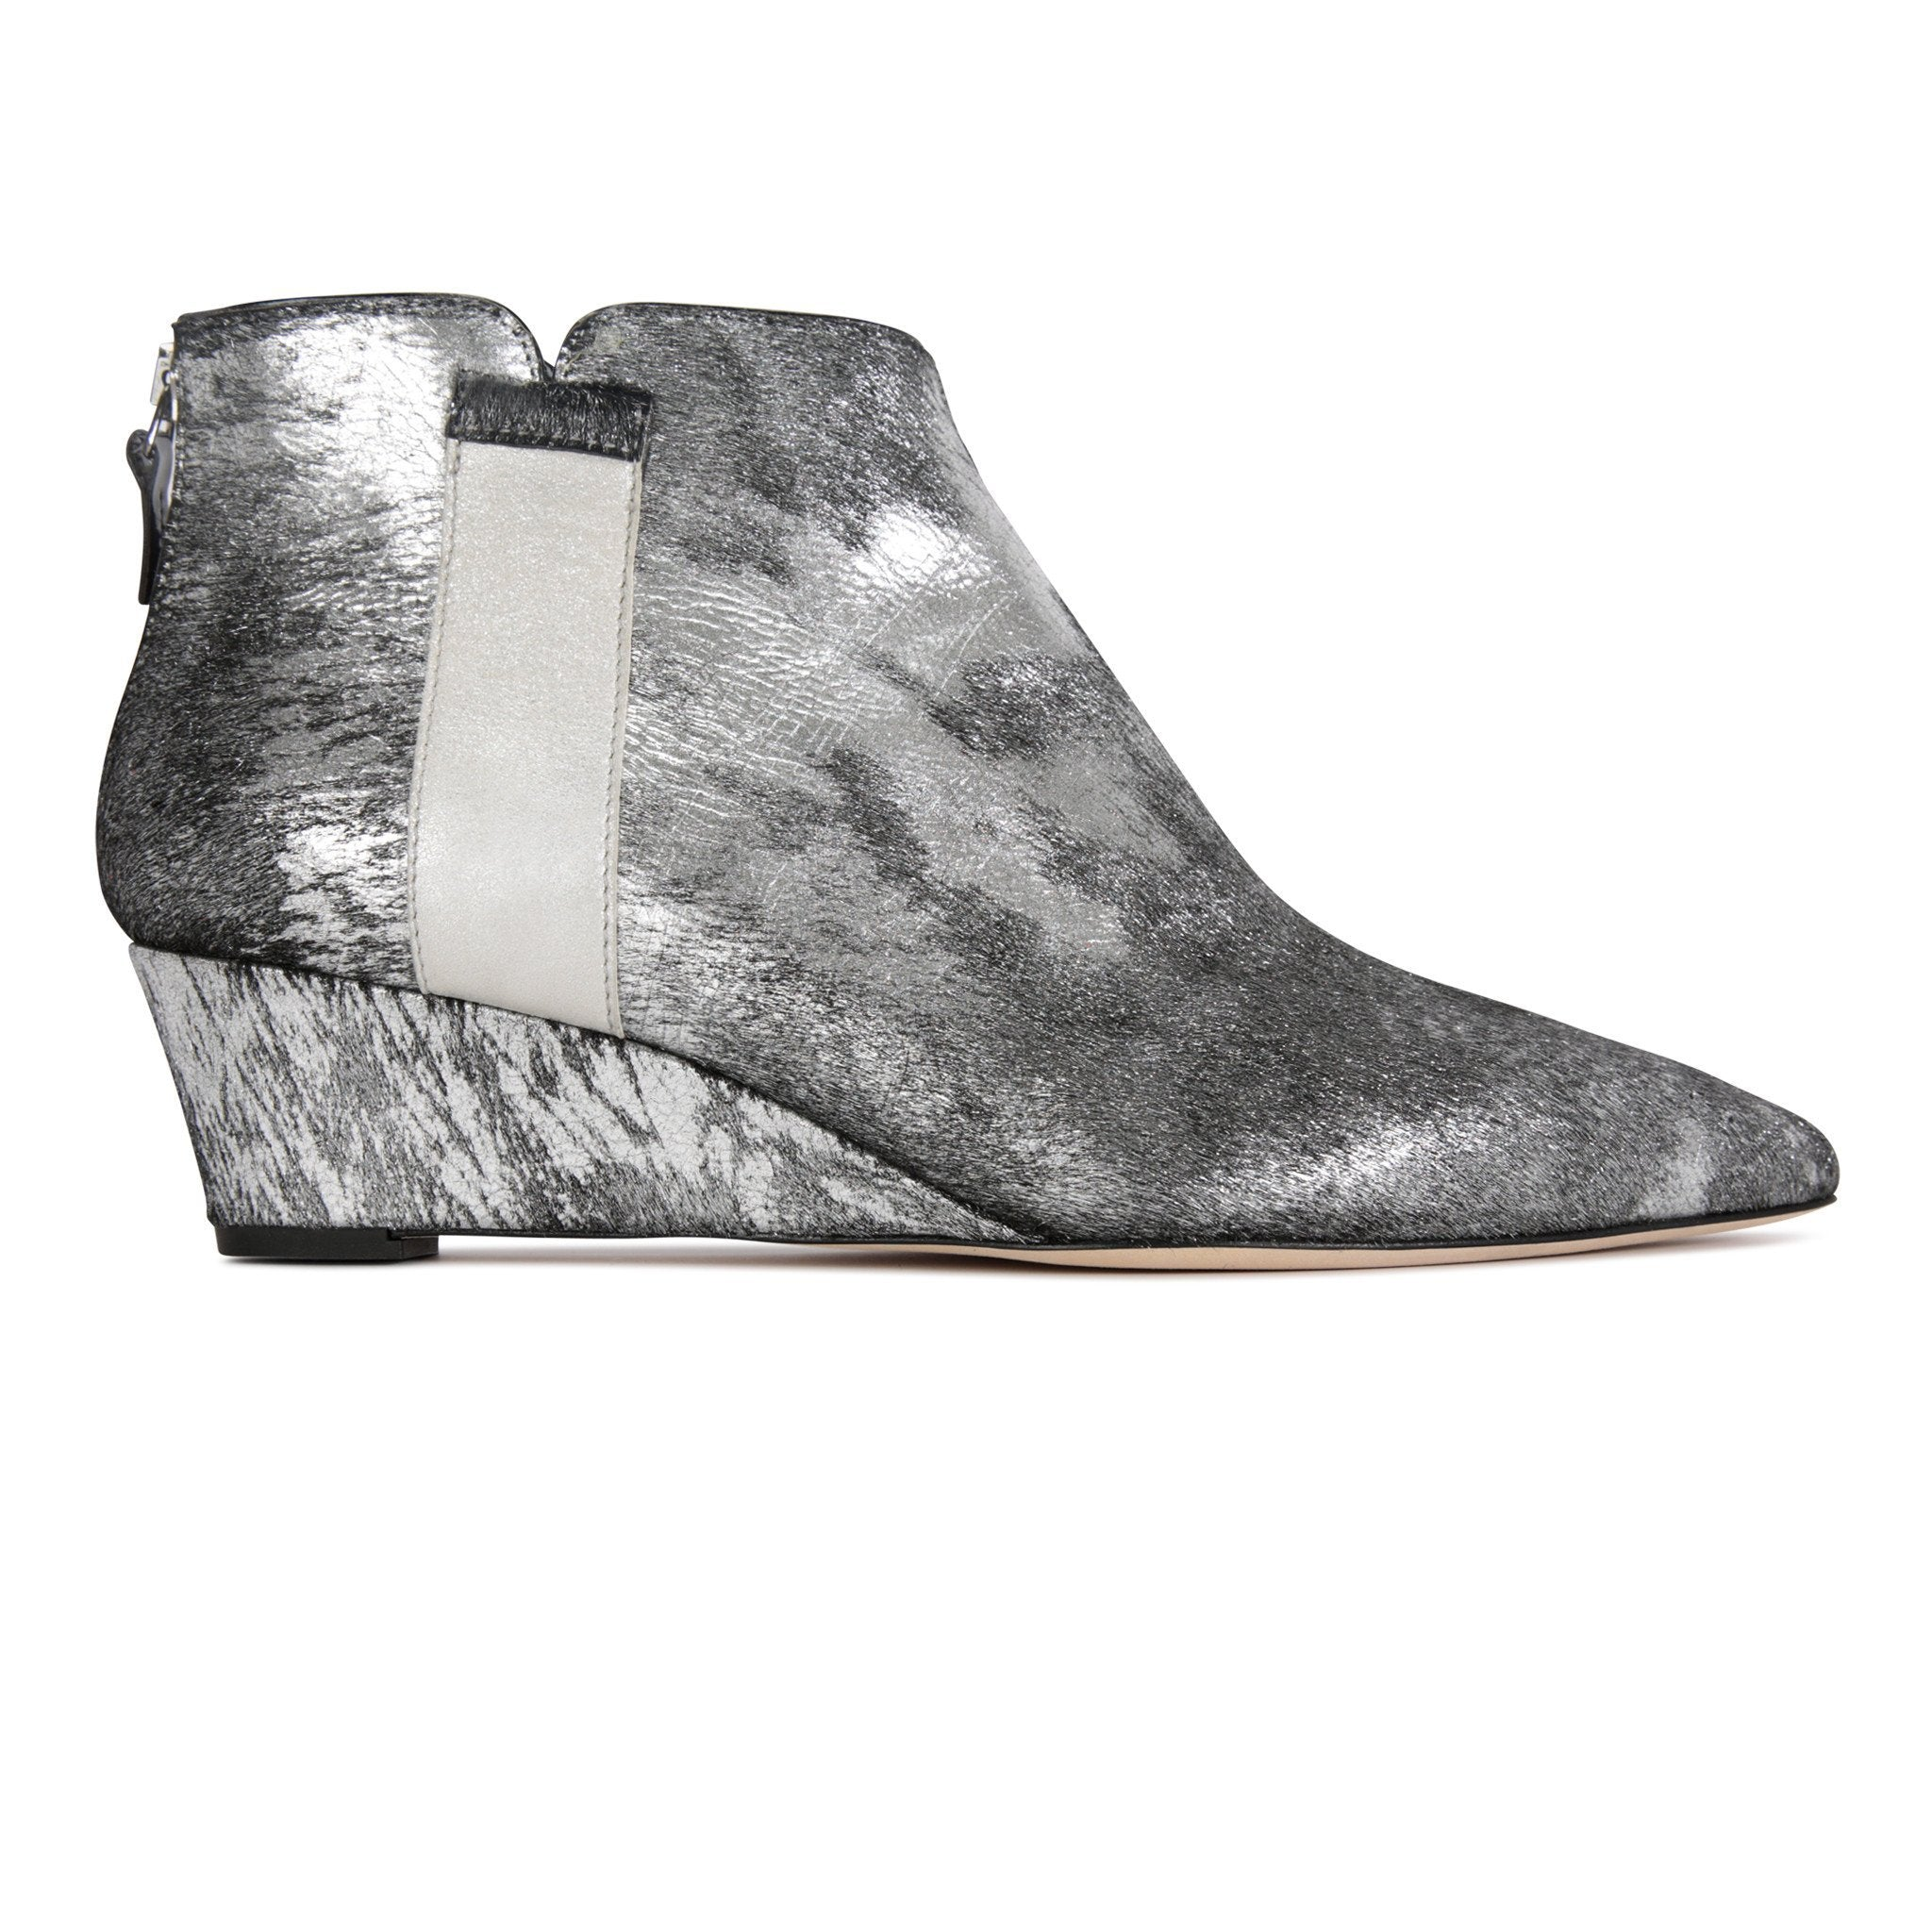 FORTE - Calf Hair Vintage Silver + Hydra Grigio, VIAJIYU - Women's Hand Made Sustainable Luxury Shoes. Made in Italy. Made to Order.